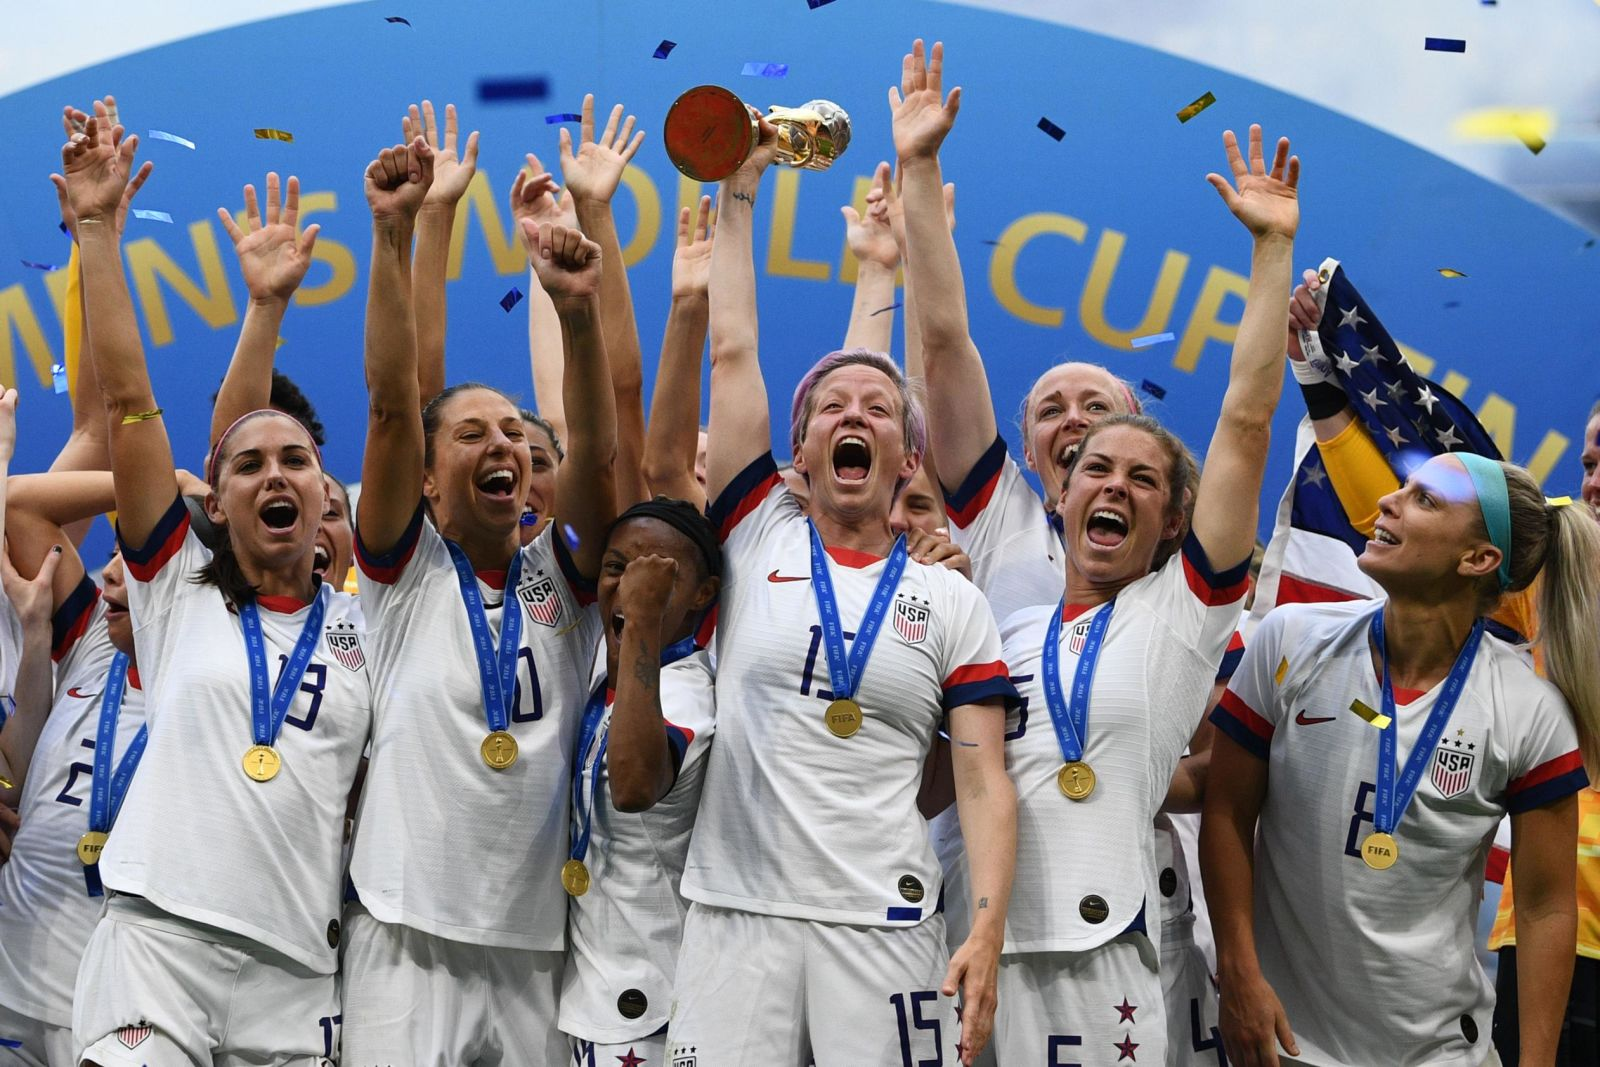 In pictures: US women win World Cup